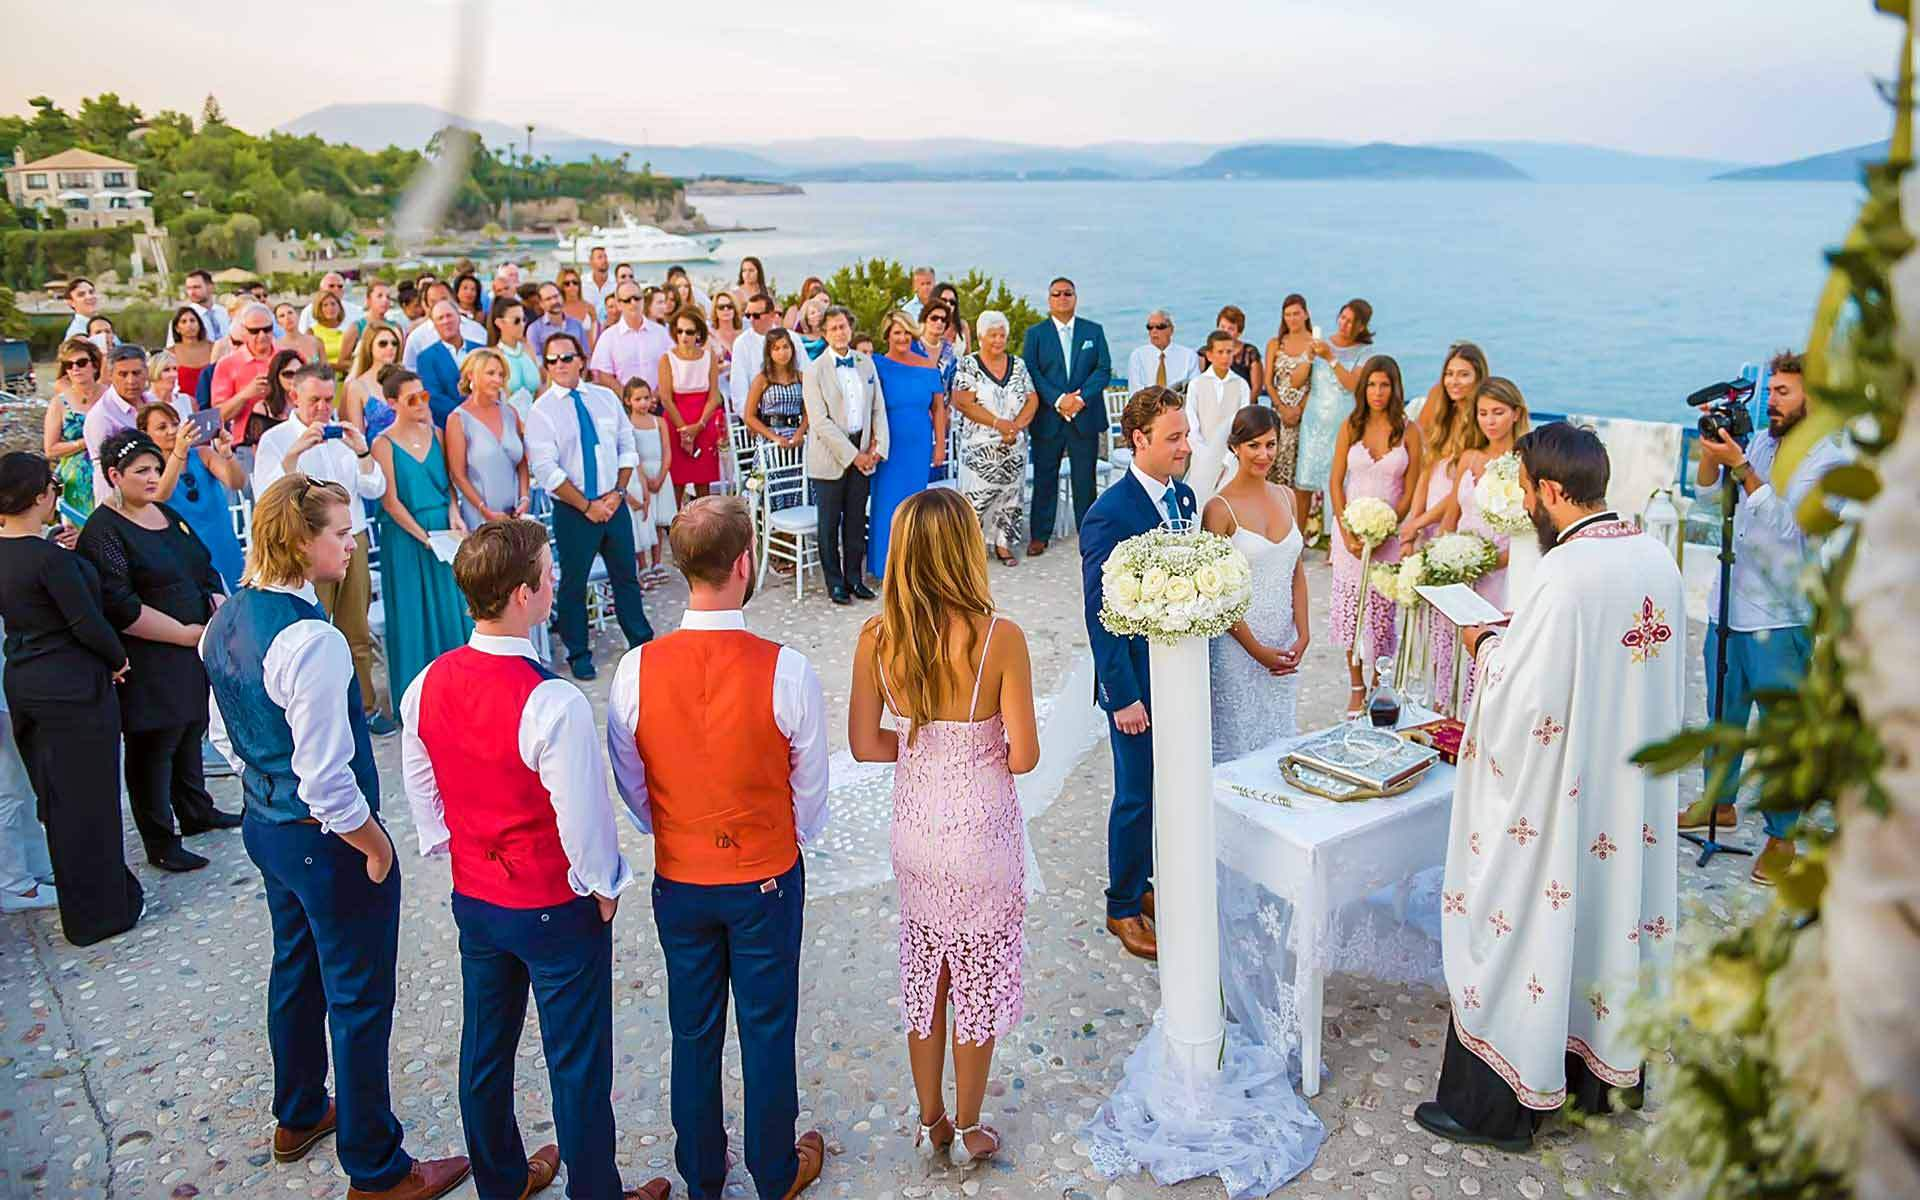 Wedding-ceremony-in-the-courtyard-of-a-monastery-on-a-Greek-island-by-Diamond-Events-Wedding